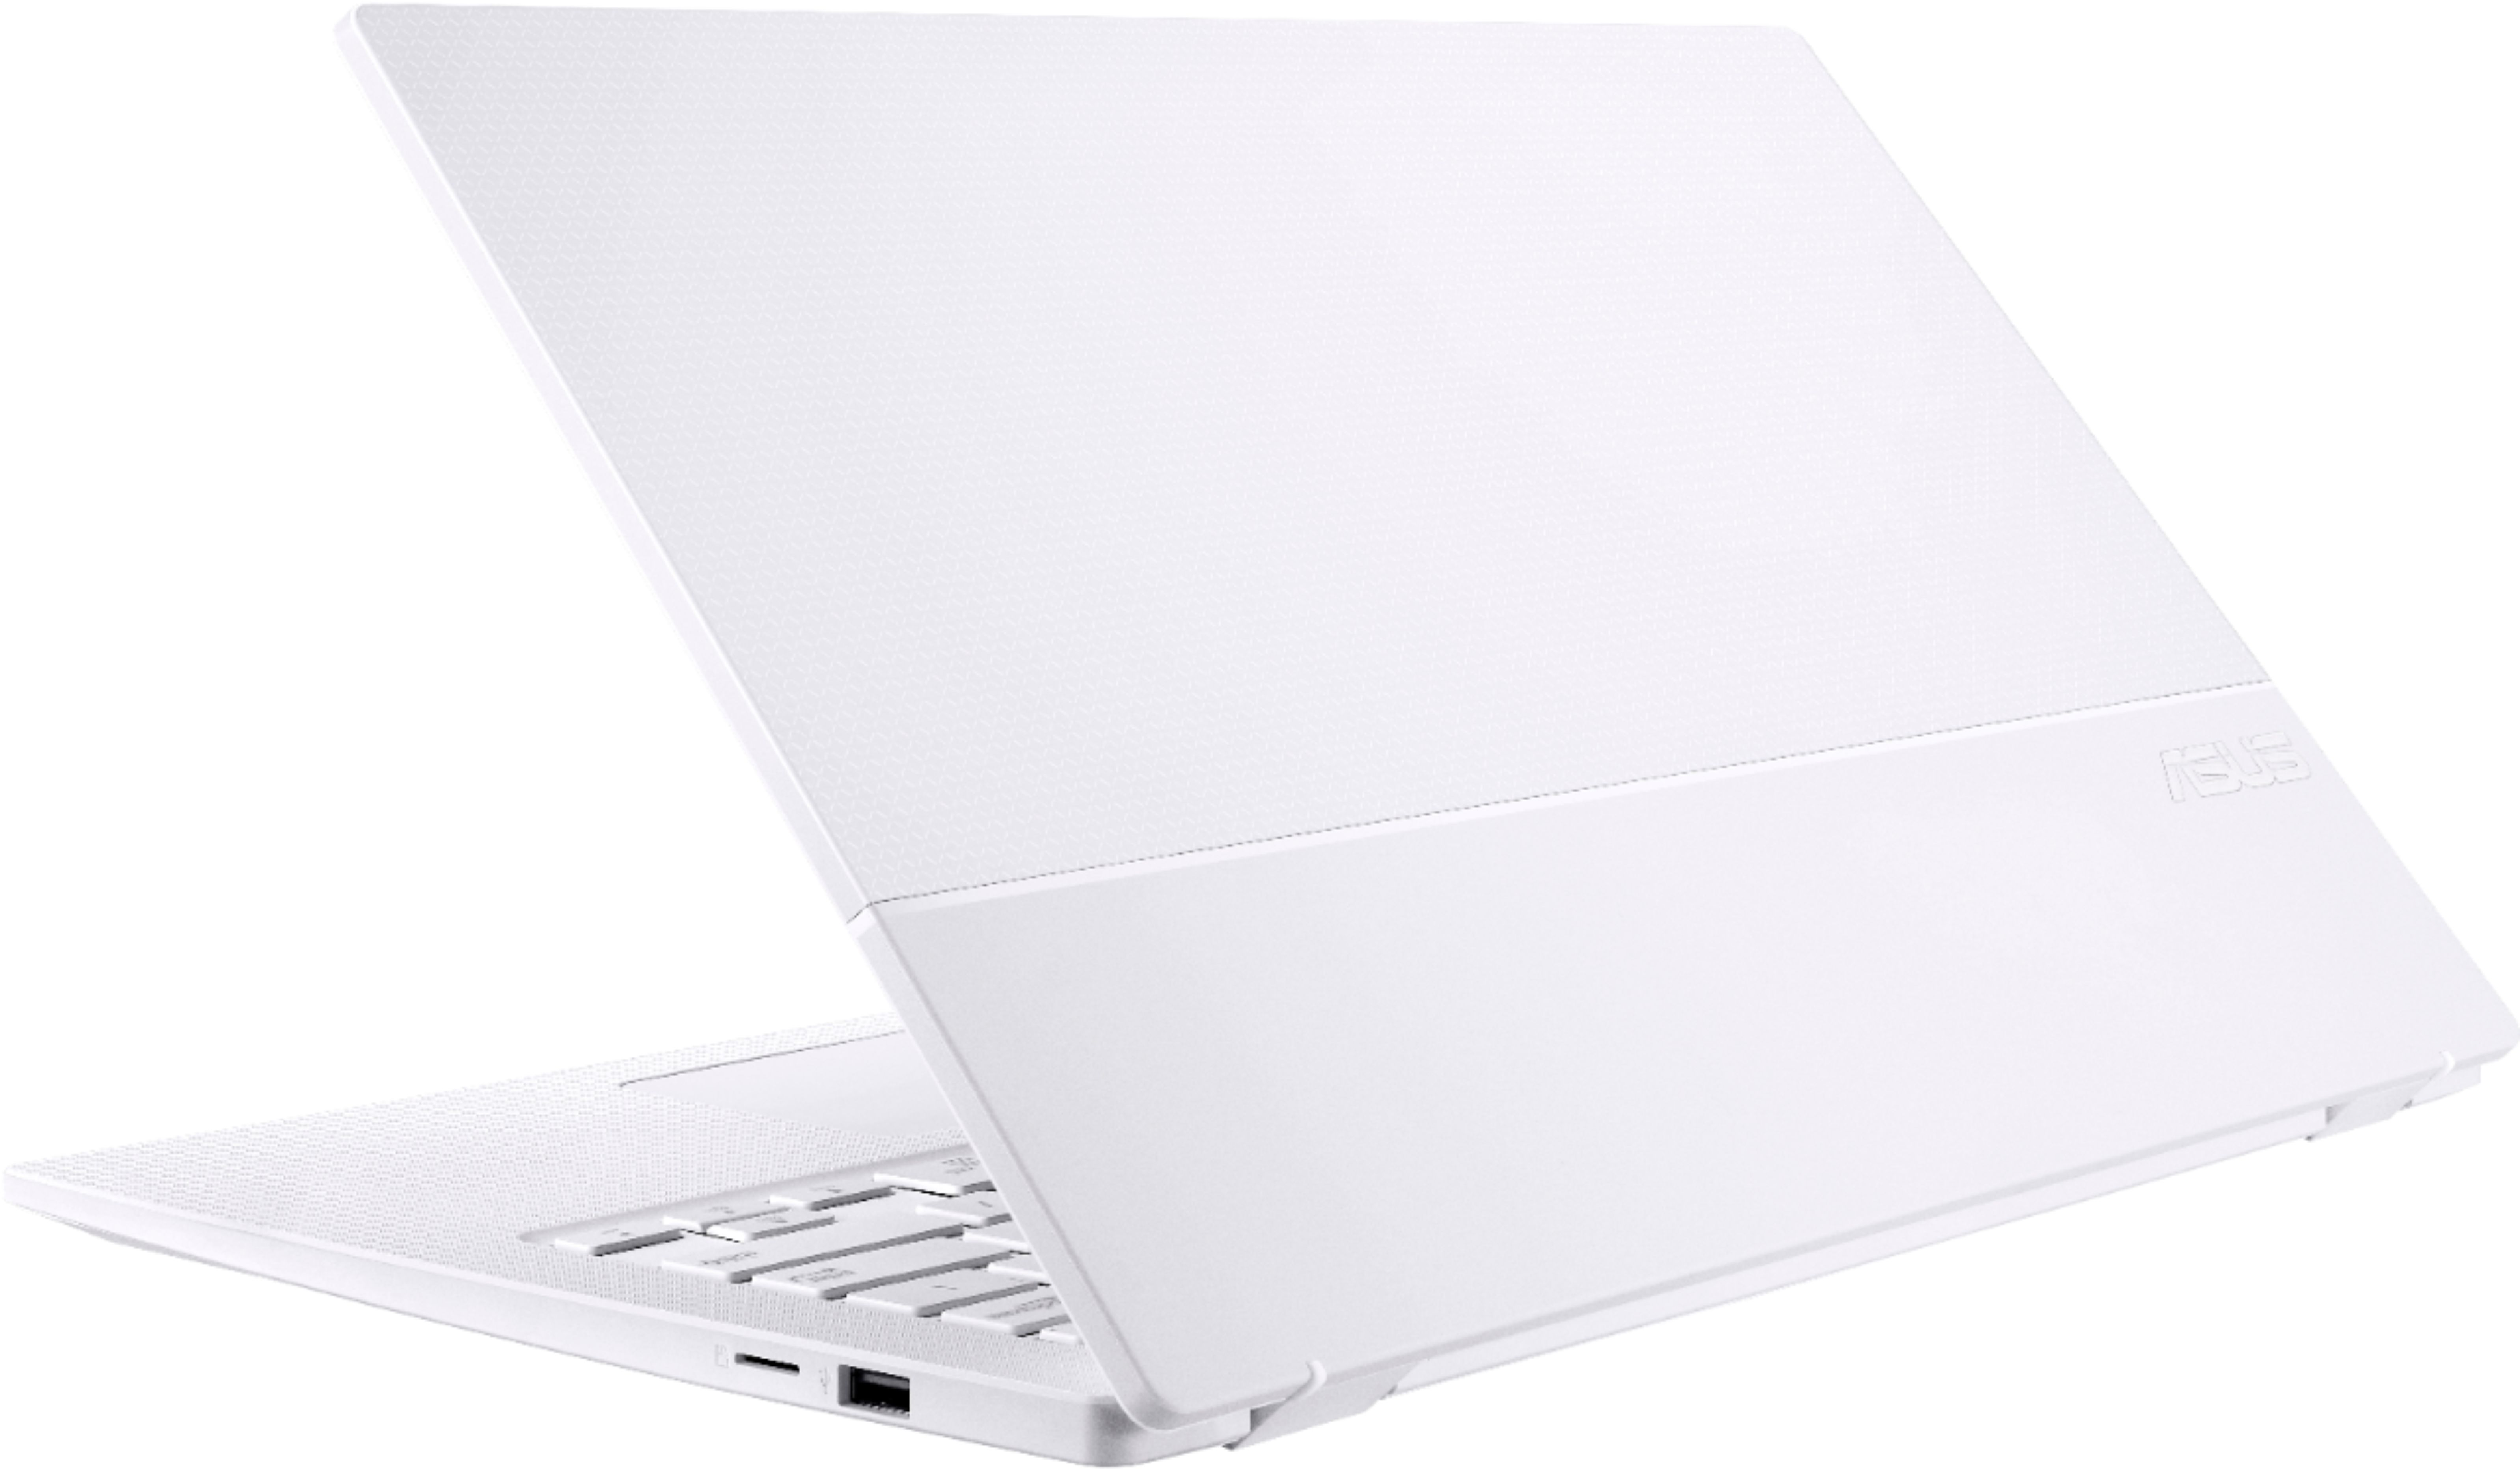 """Alt View Zoom 1. ASUS - Geek Squad Certified Refurbished ImagineBook 14"""" Laptop - Intel Core m3 - 4GB Memory - 128GB Solid State Drive - Textured White."""